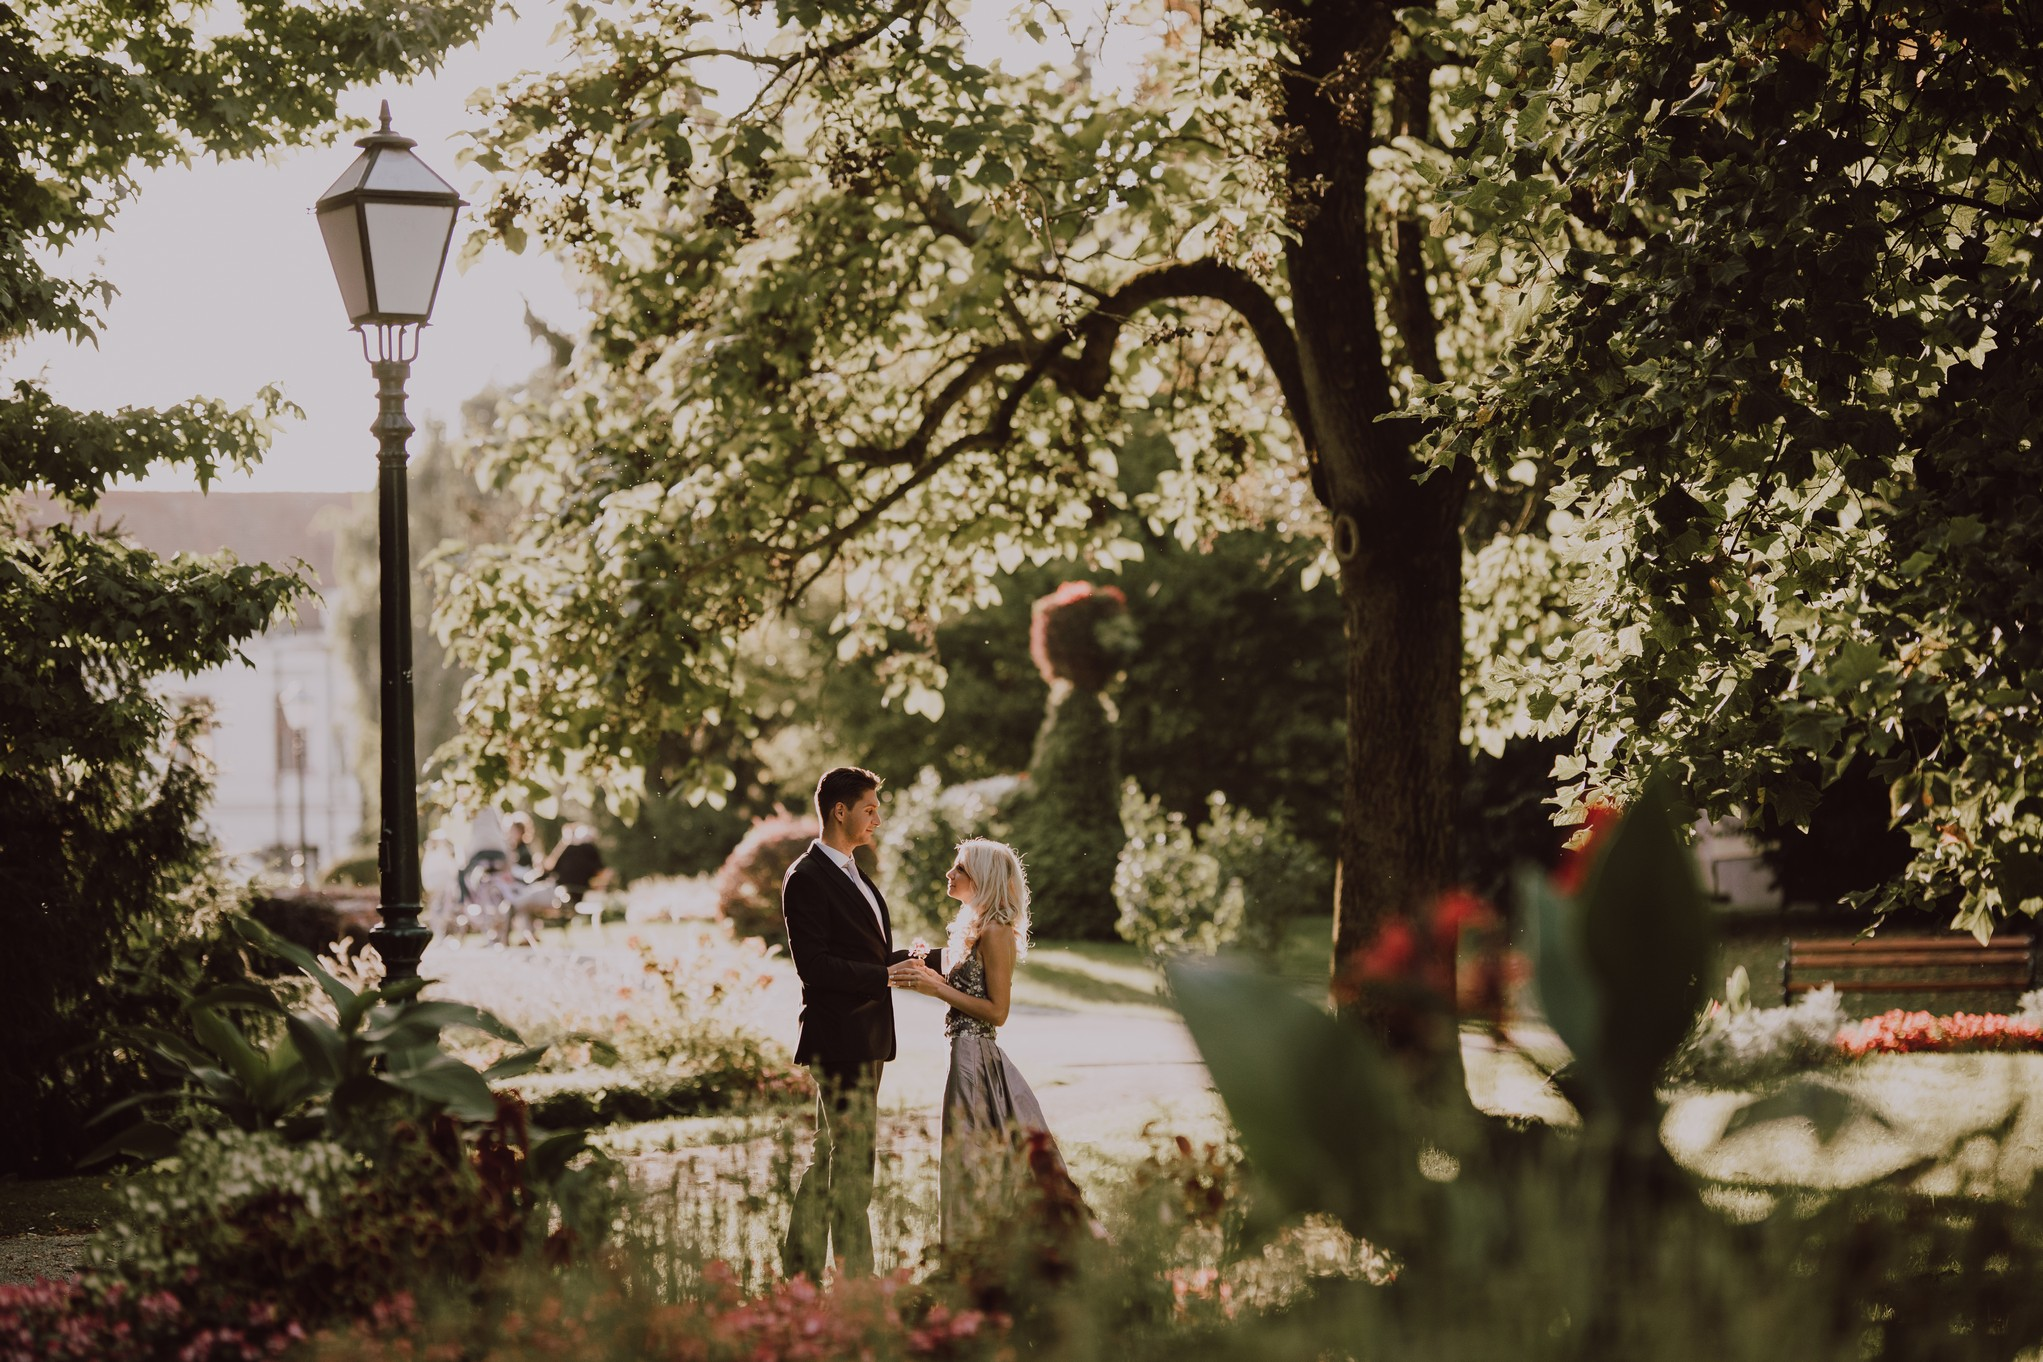 A couple of brides are standing in the park and looking at each other in love